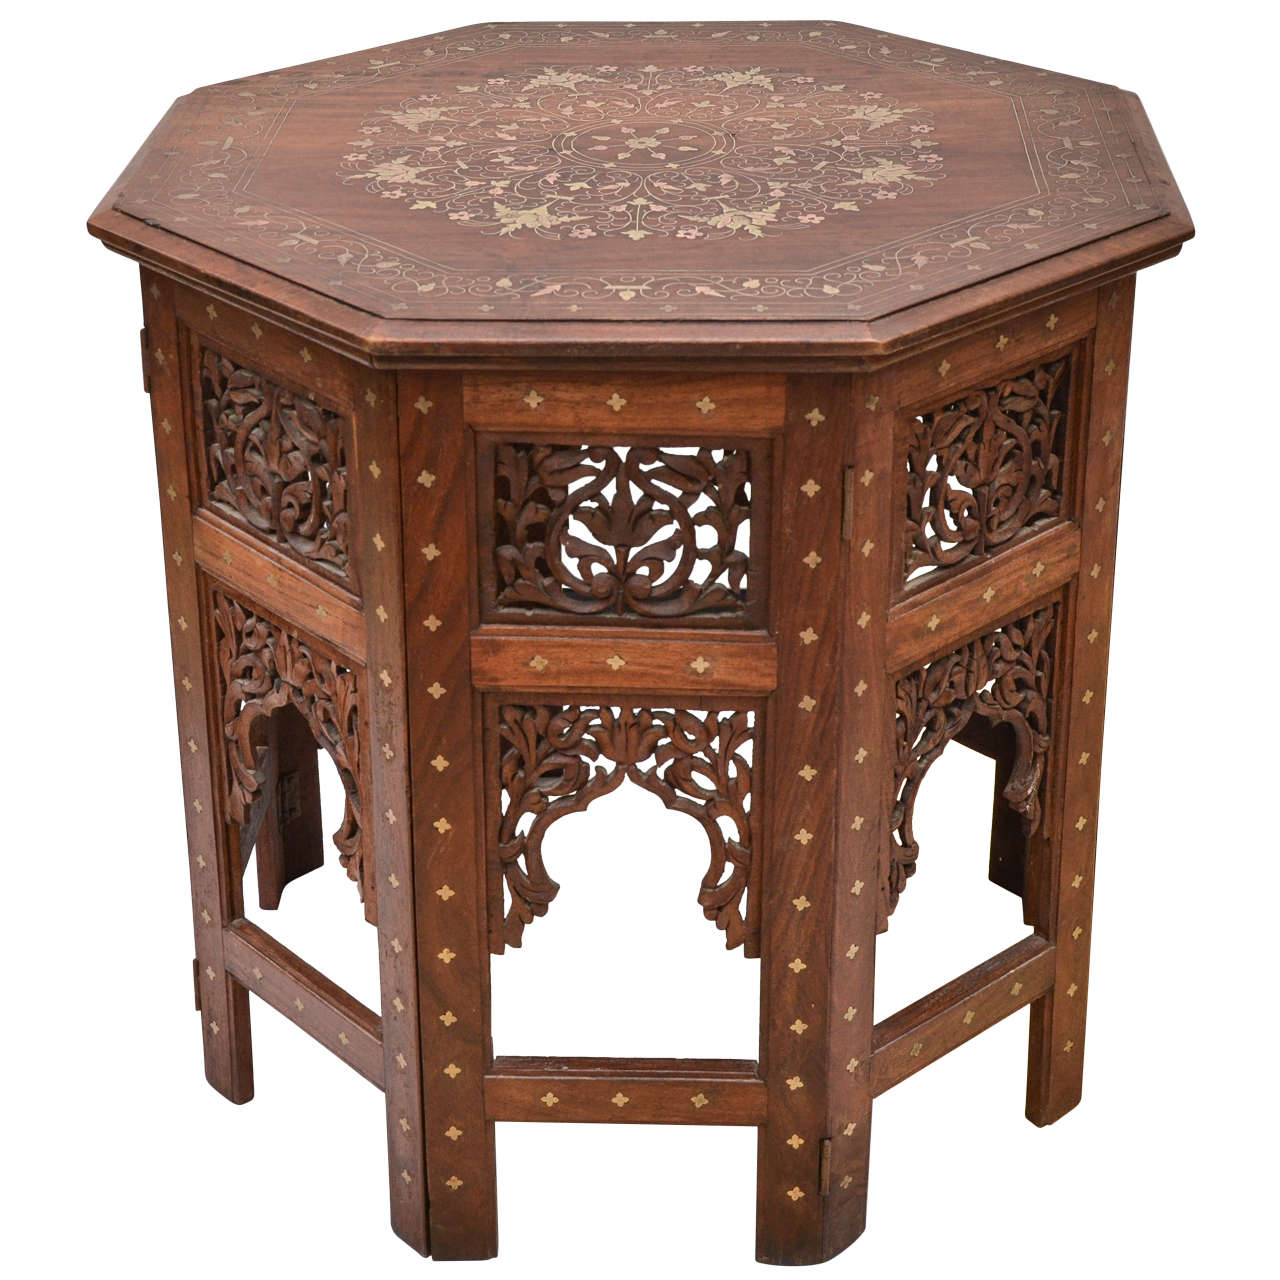 Octagonal Indian Teak with Brass Inlay Occasional Table at